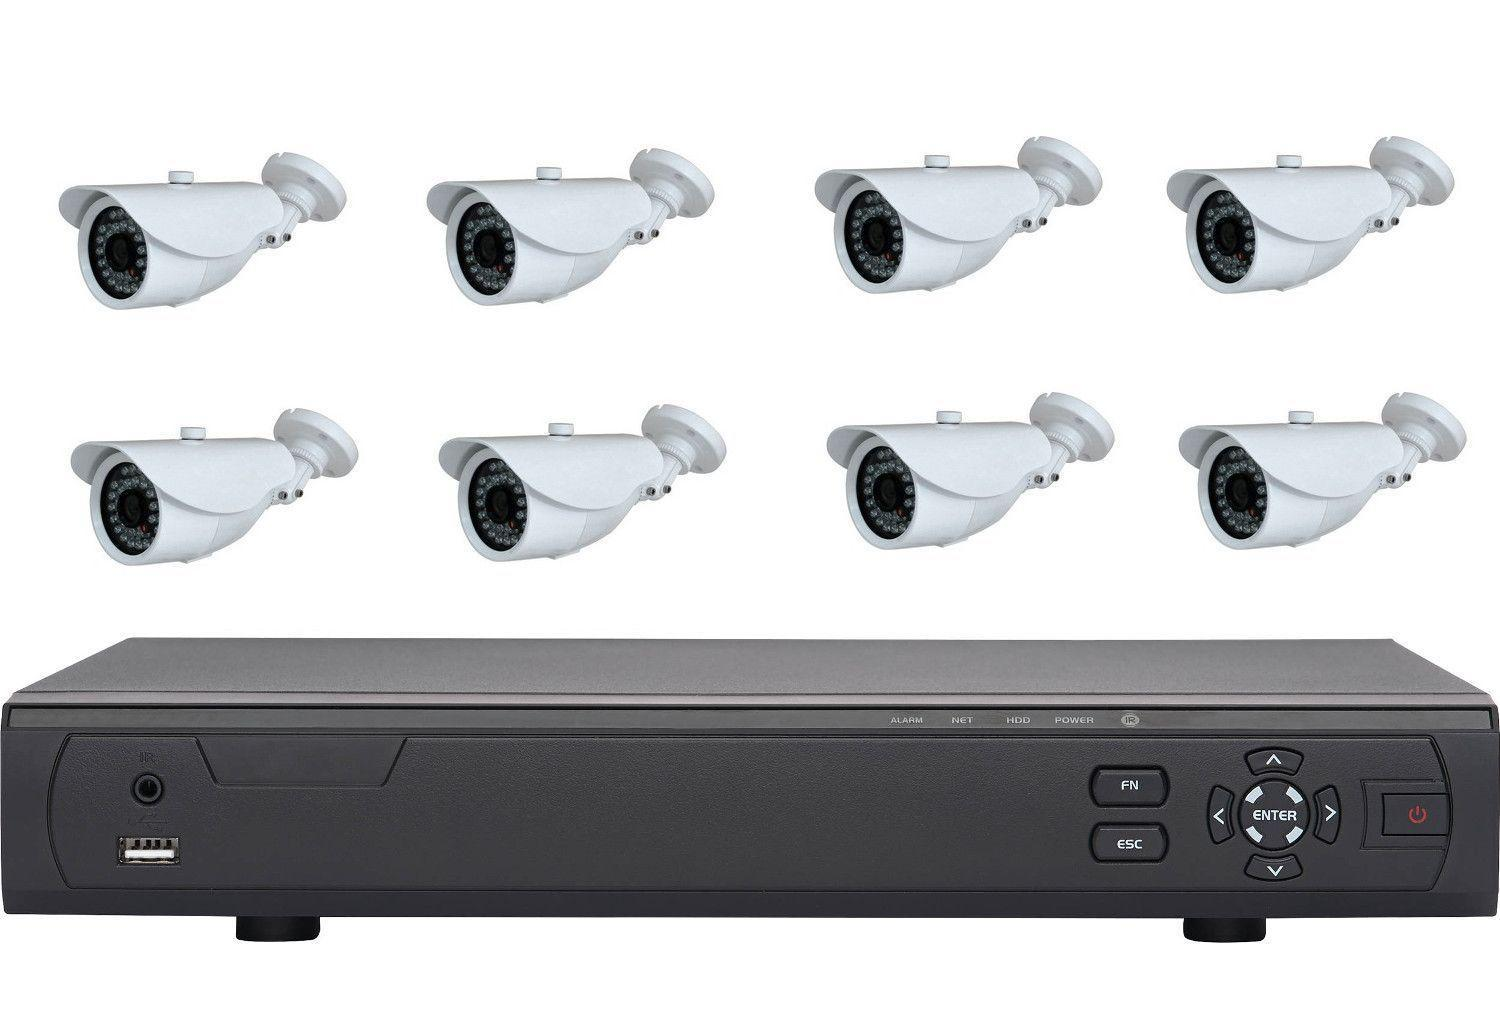 kit vid o surveillance 8 cam ras ext rieur enregistreur. Black Bedroom Furniture Sets. Home Design Ideas